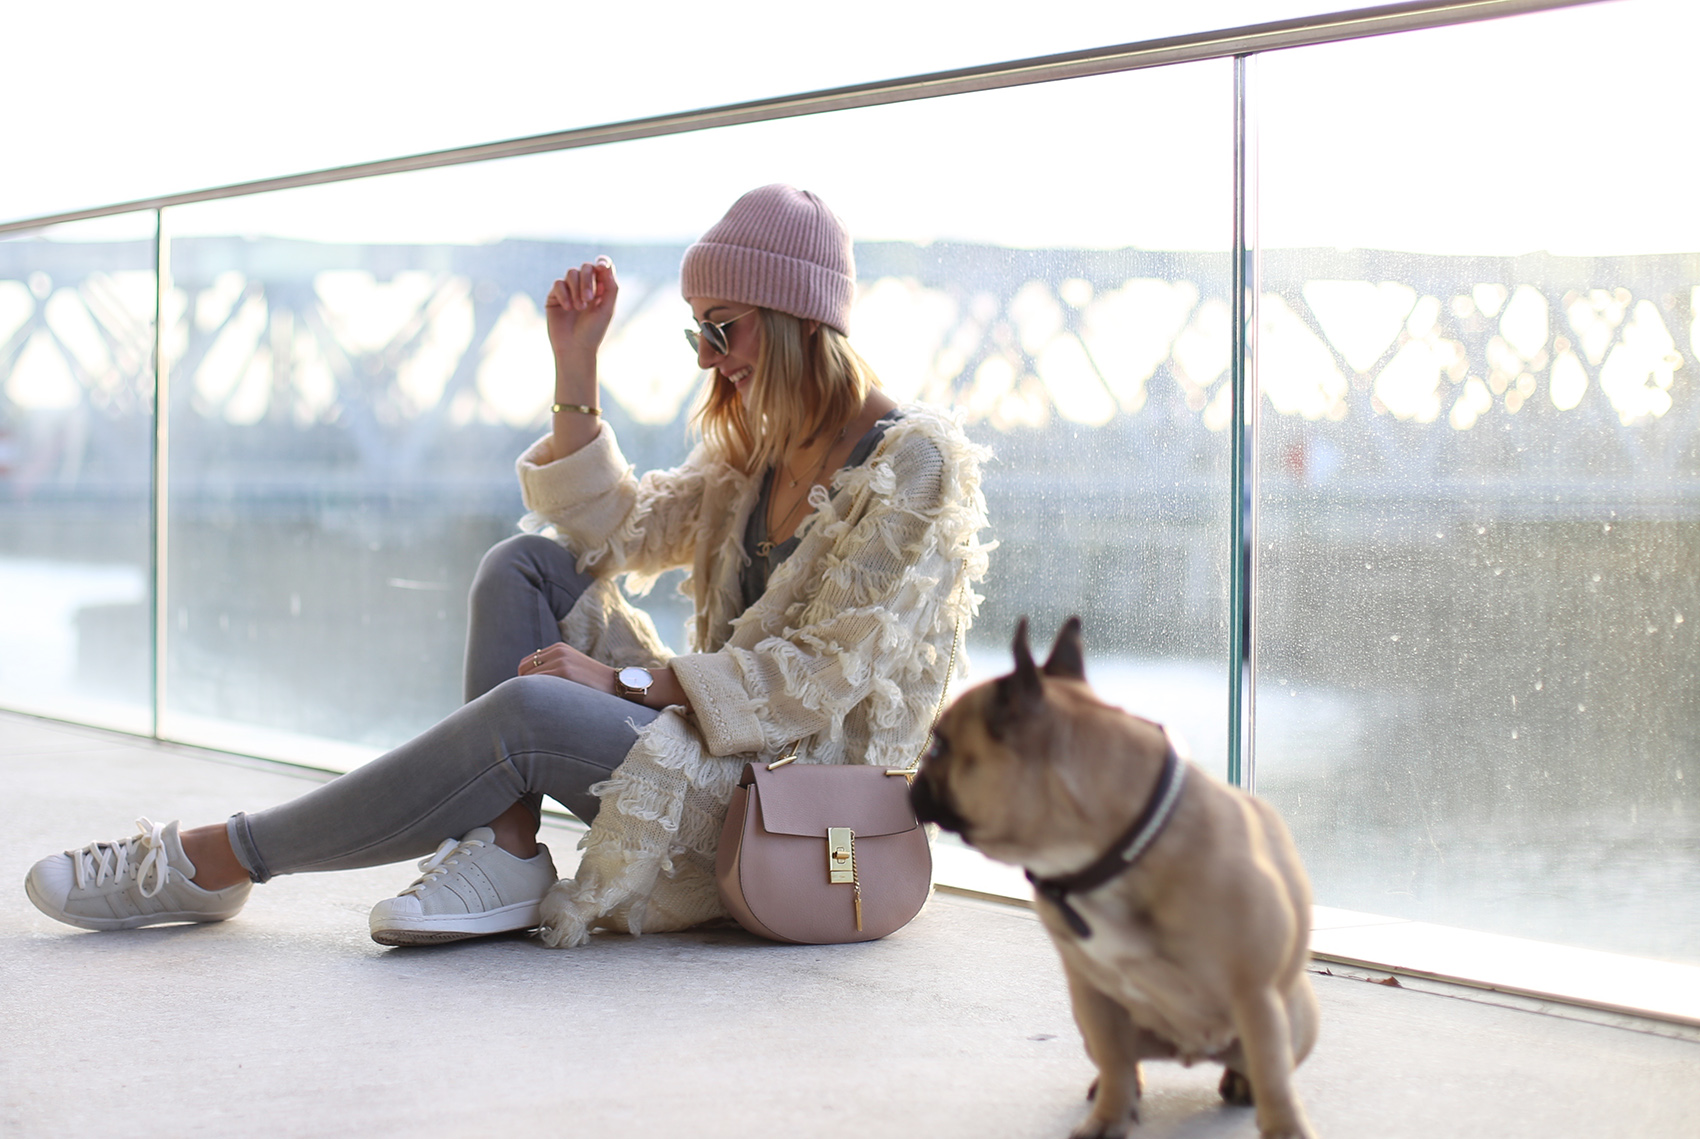 Chloe-drew-bag-cement-pink